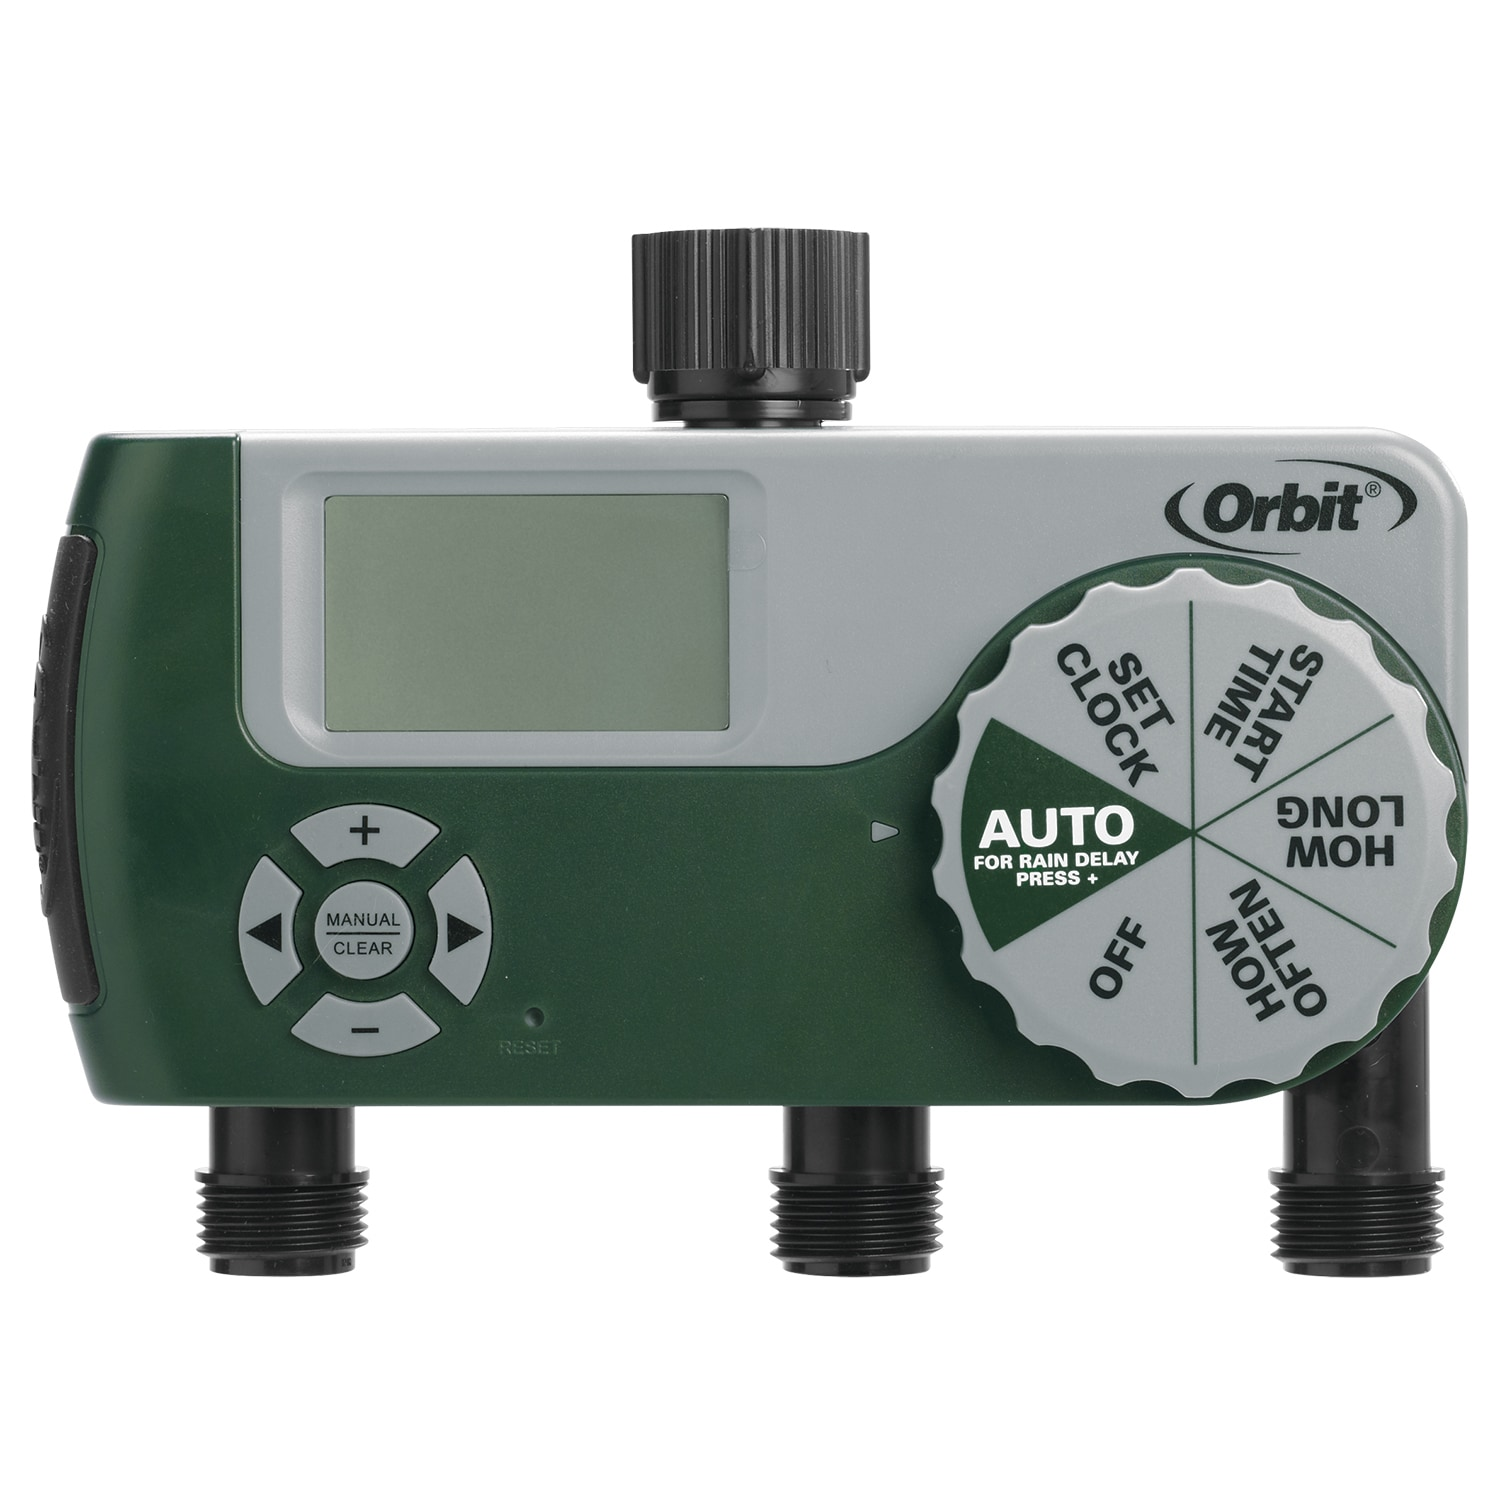 Orbit 56082 3 Outlet Digital Timer (Water Timers), Green